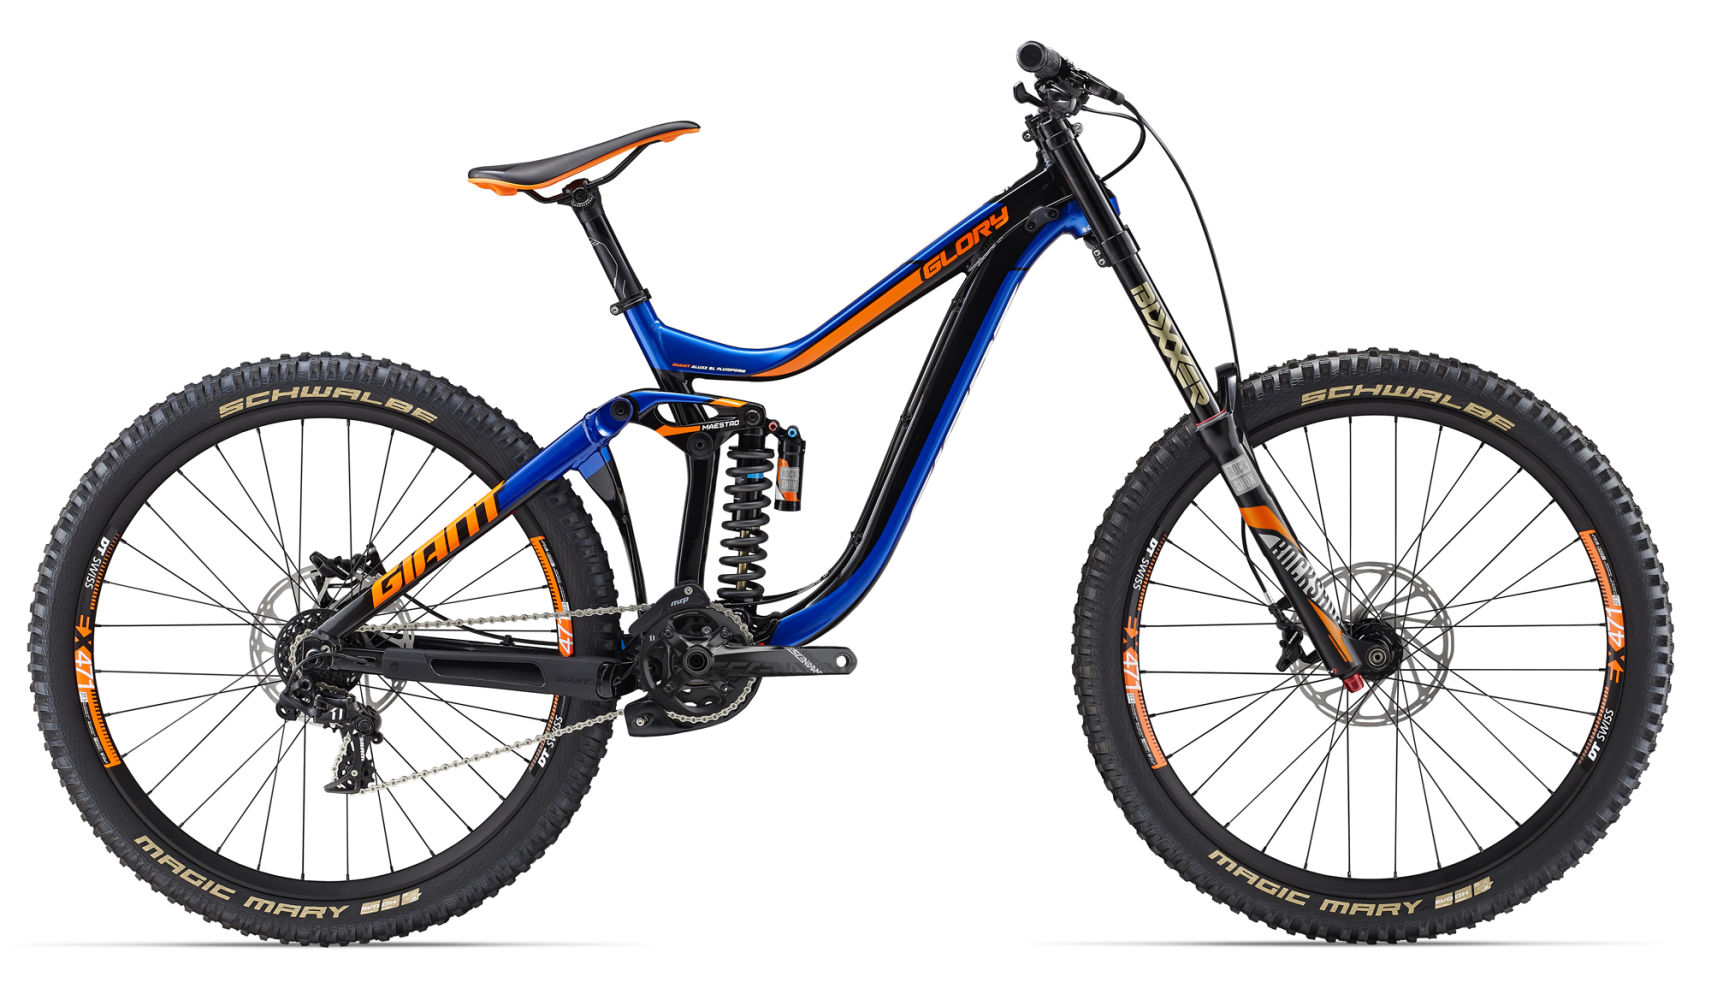 Giant Mountain Bikes Giant Bicycles Ireland